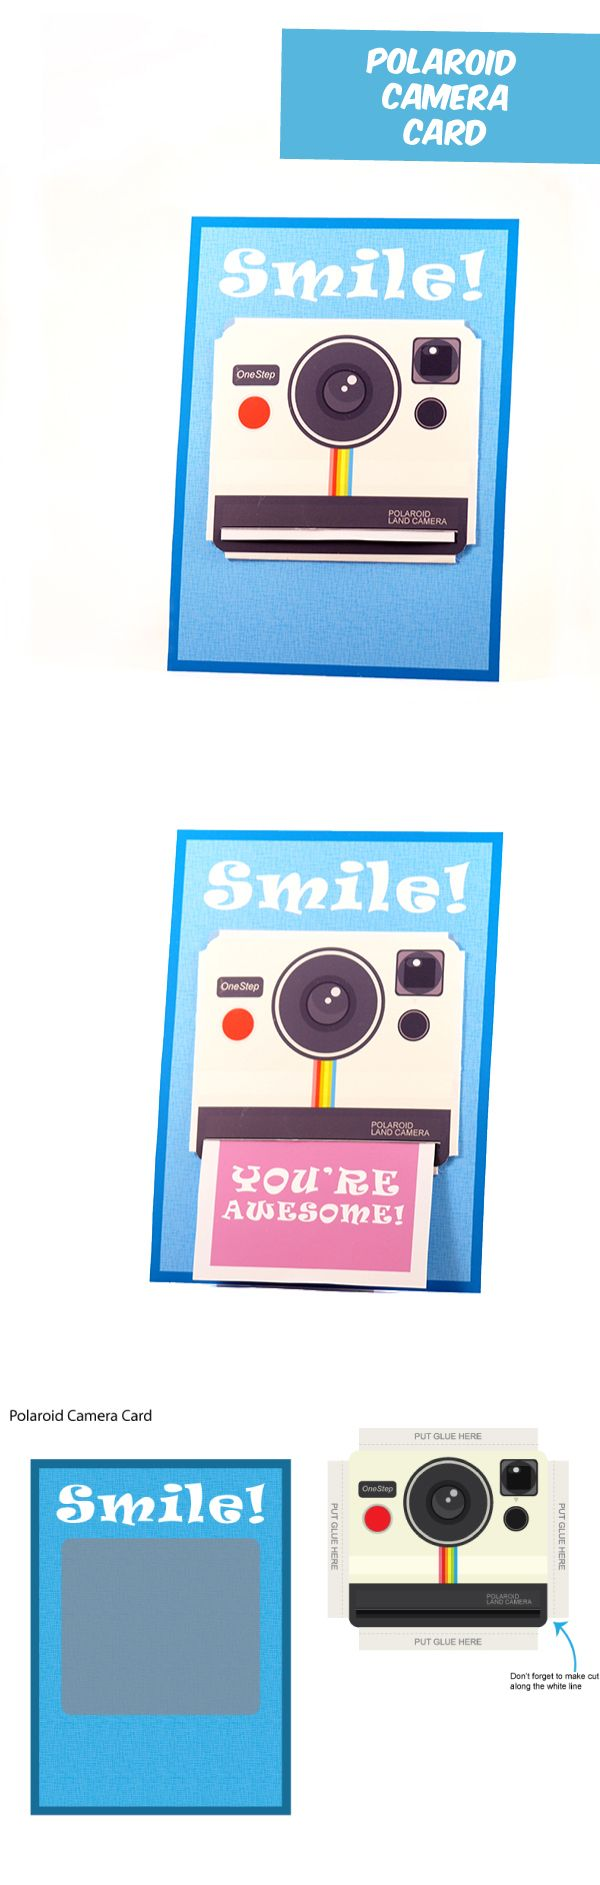 Create your own Polaroid Camera Card! DIY Paper Crafts.